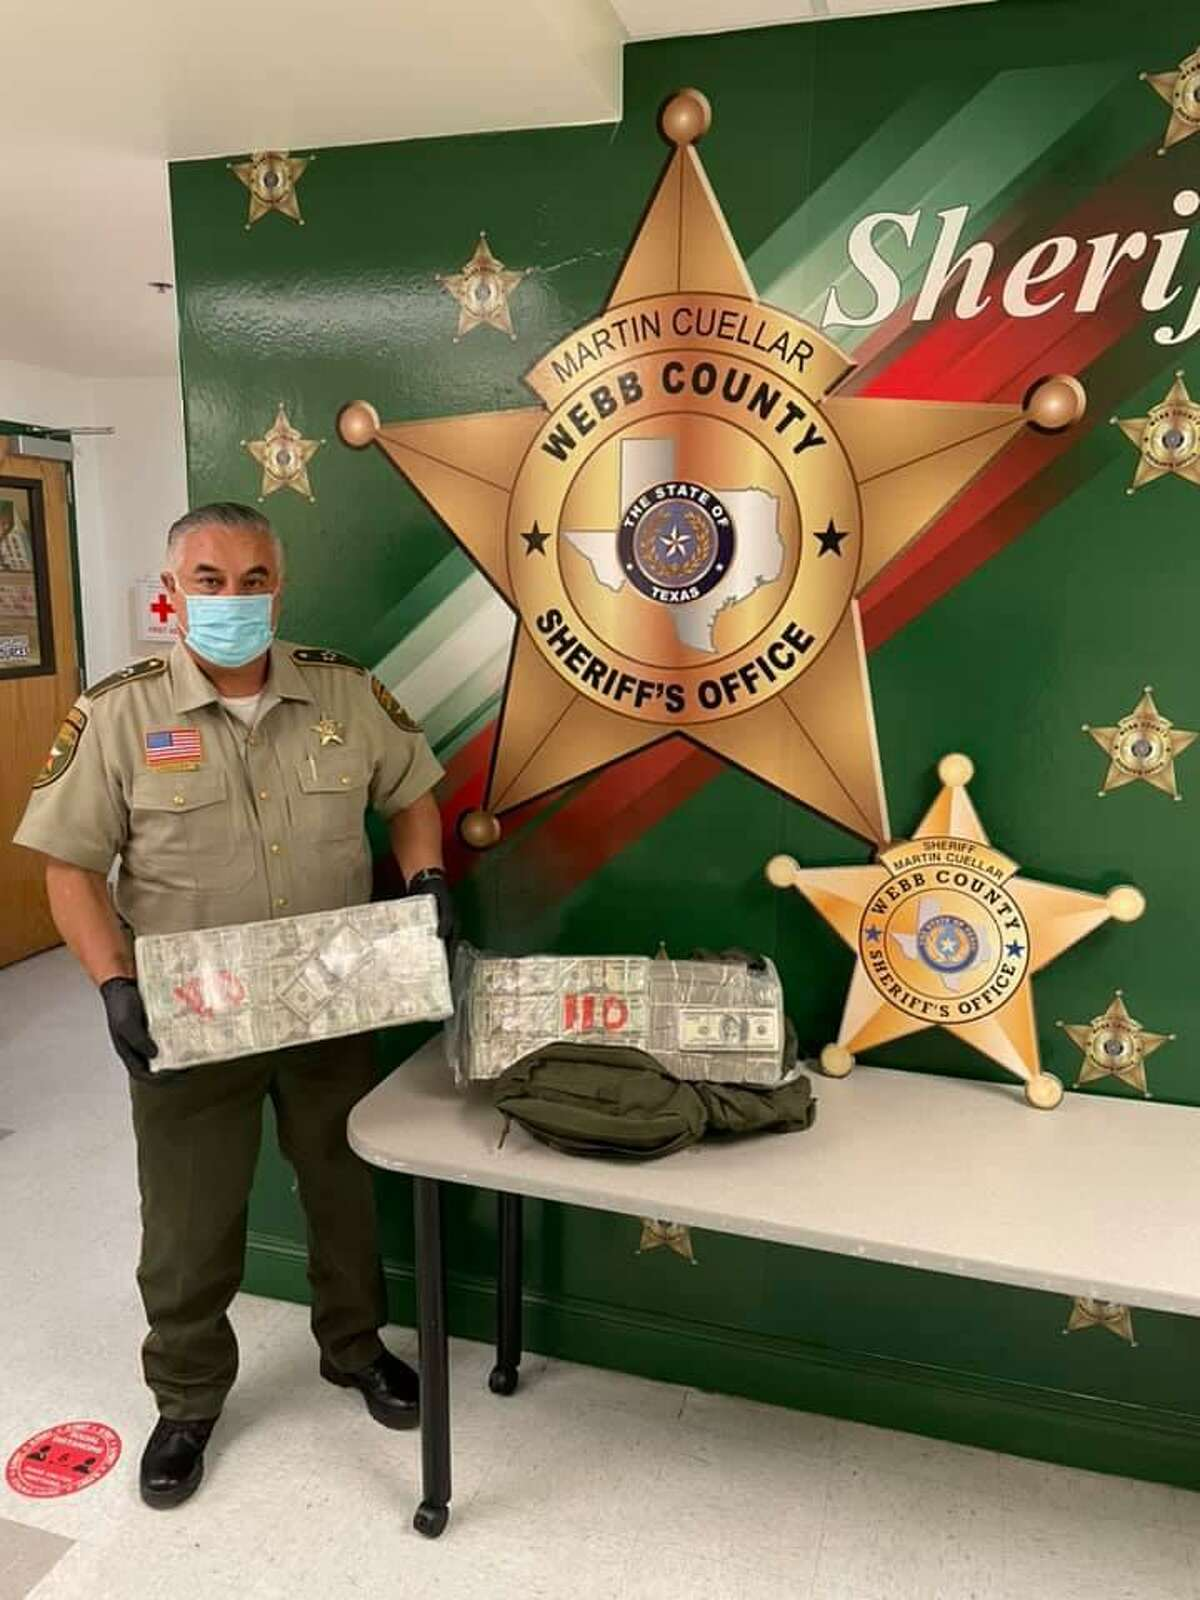 Webb County Sheriff Martin Cuellar said deputies seized more than $200,000 on Saturday following a traffic stop north of Laredo. A man was detained and released pending further investigation.